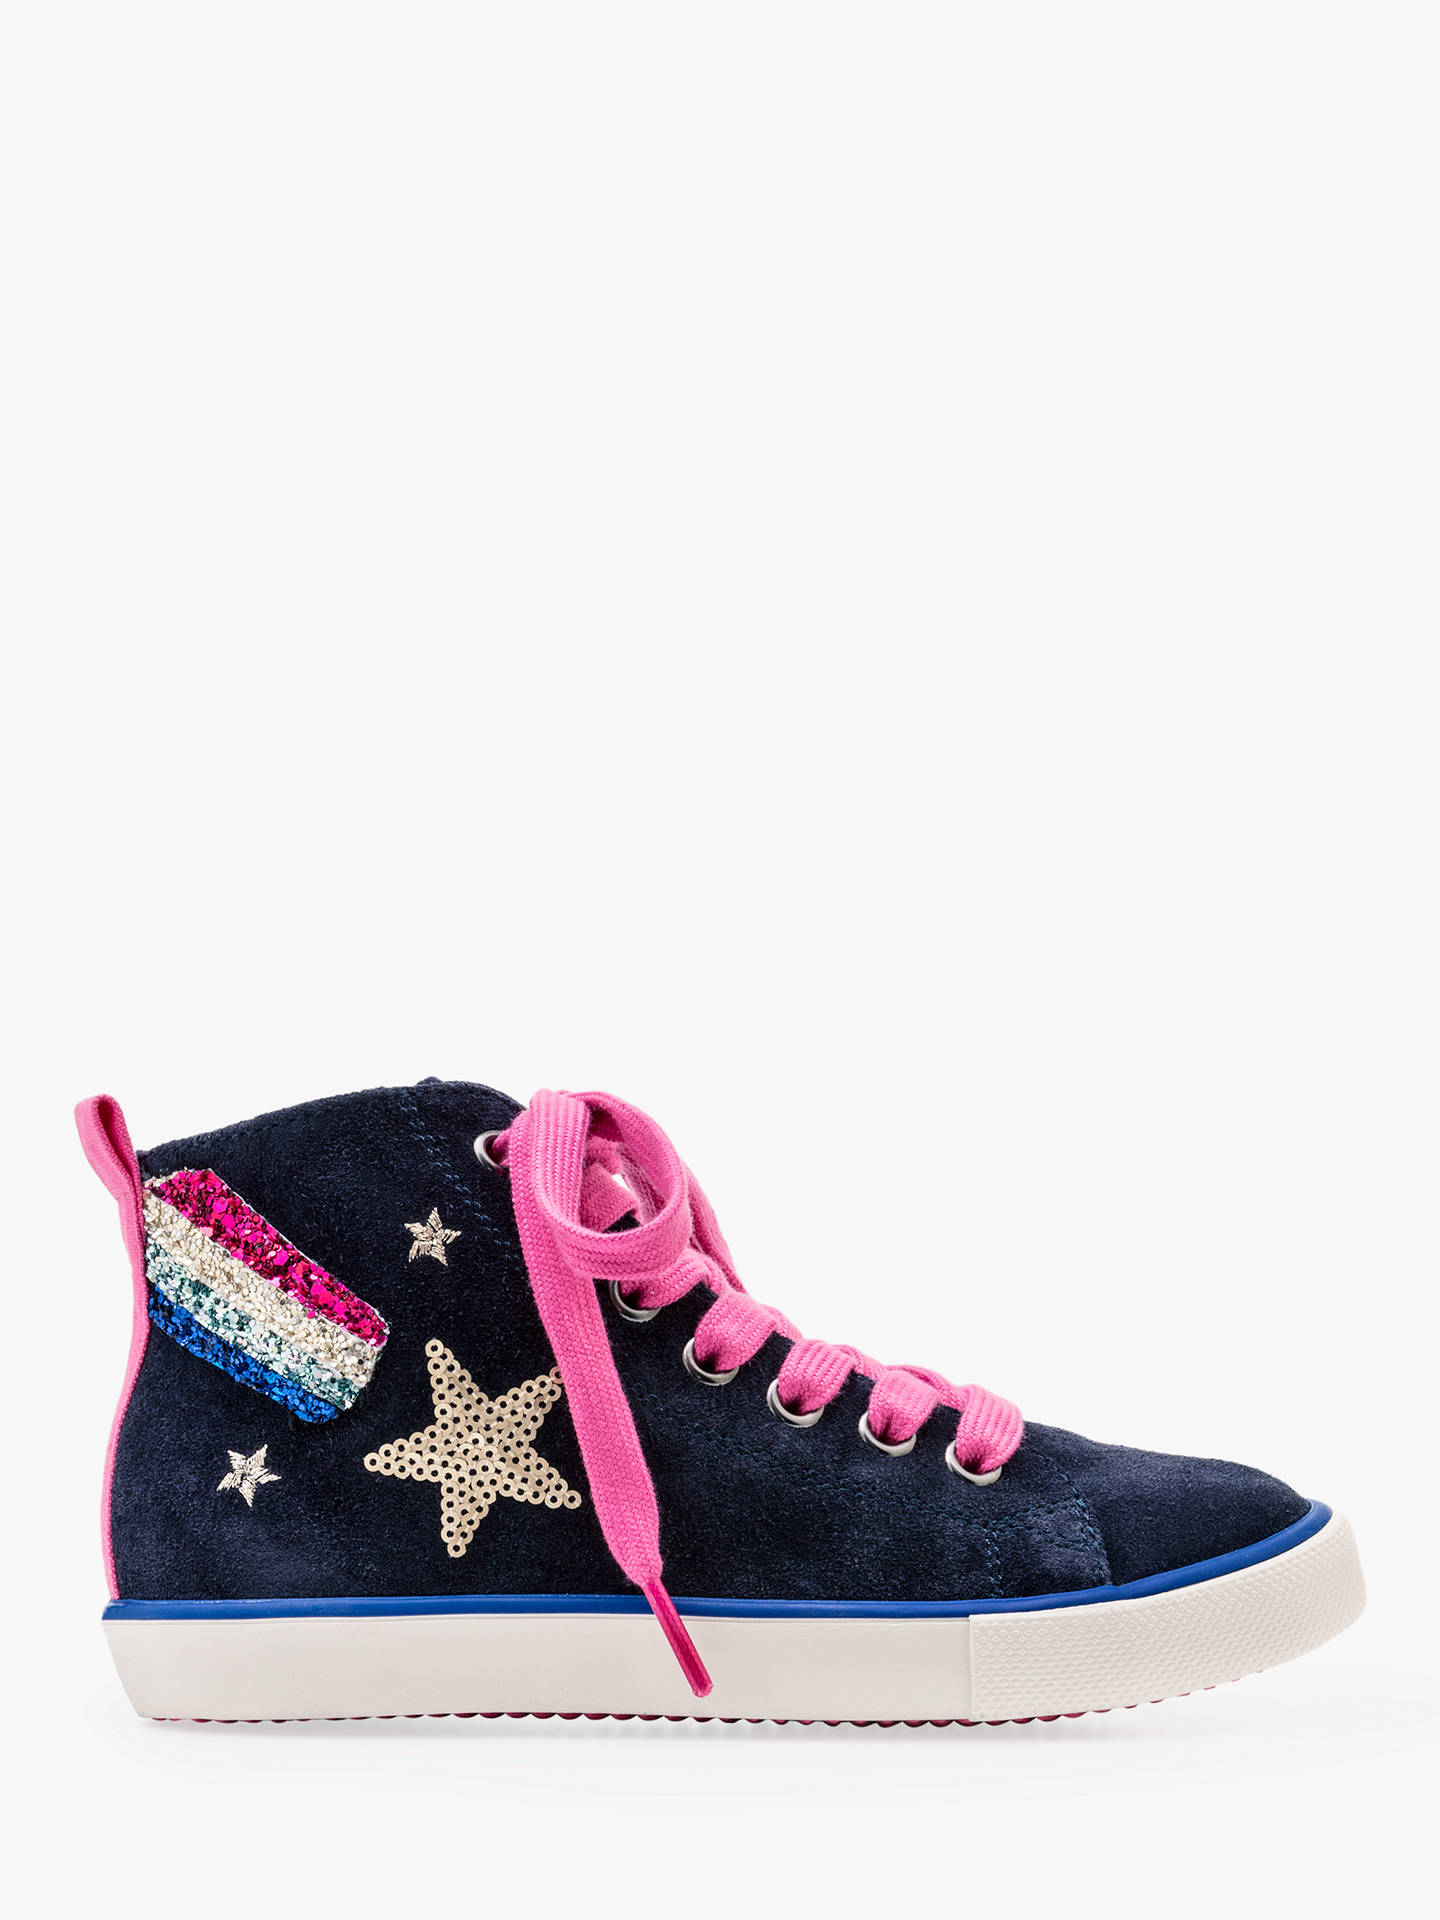 Mini Boden Children S High Top Shooting Star Trainers